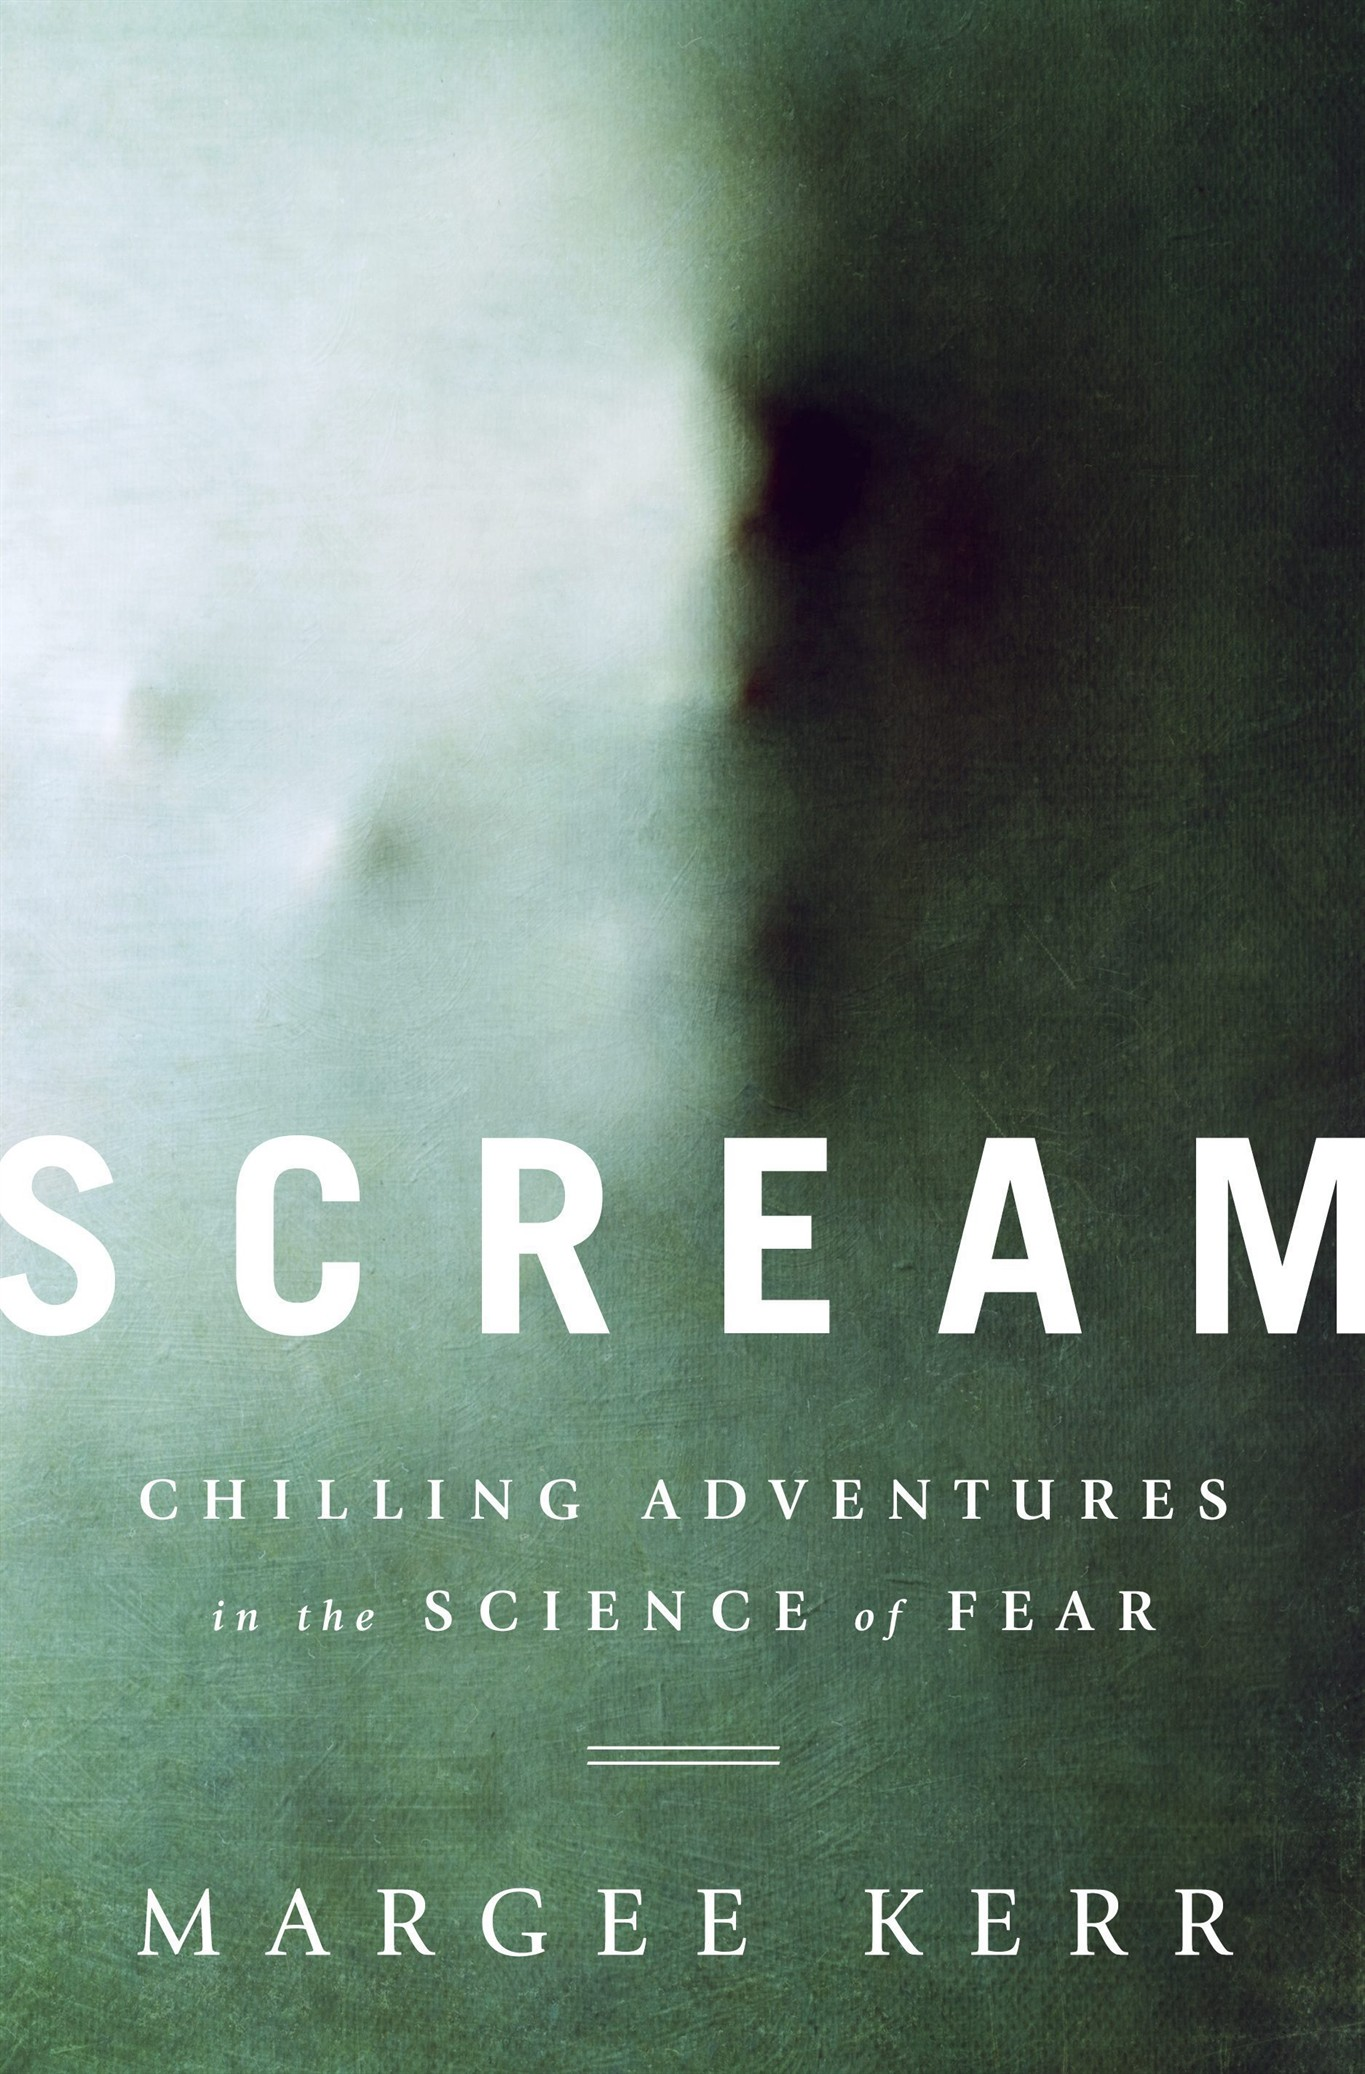 Sociologist who studies fear at Halloween attraction explains it ...